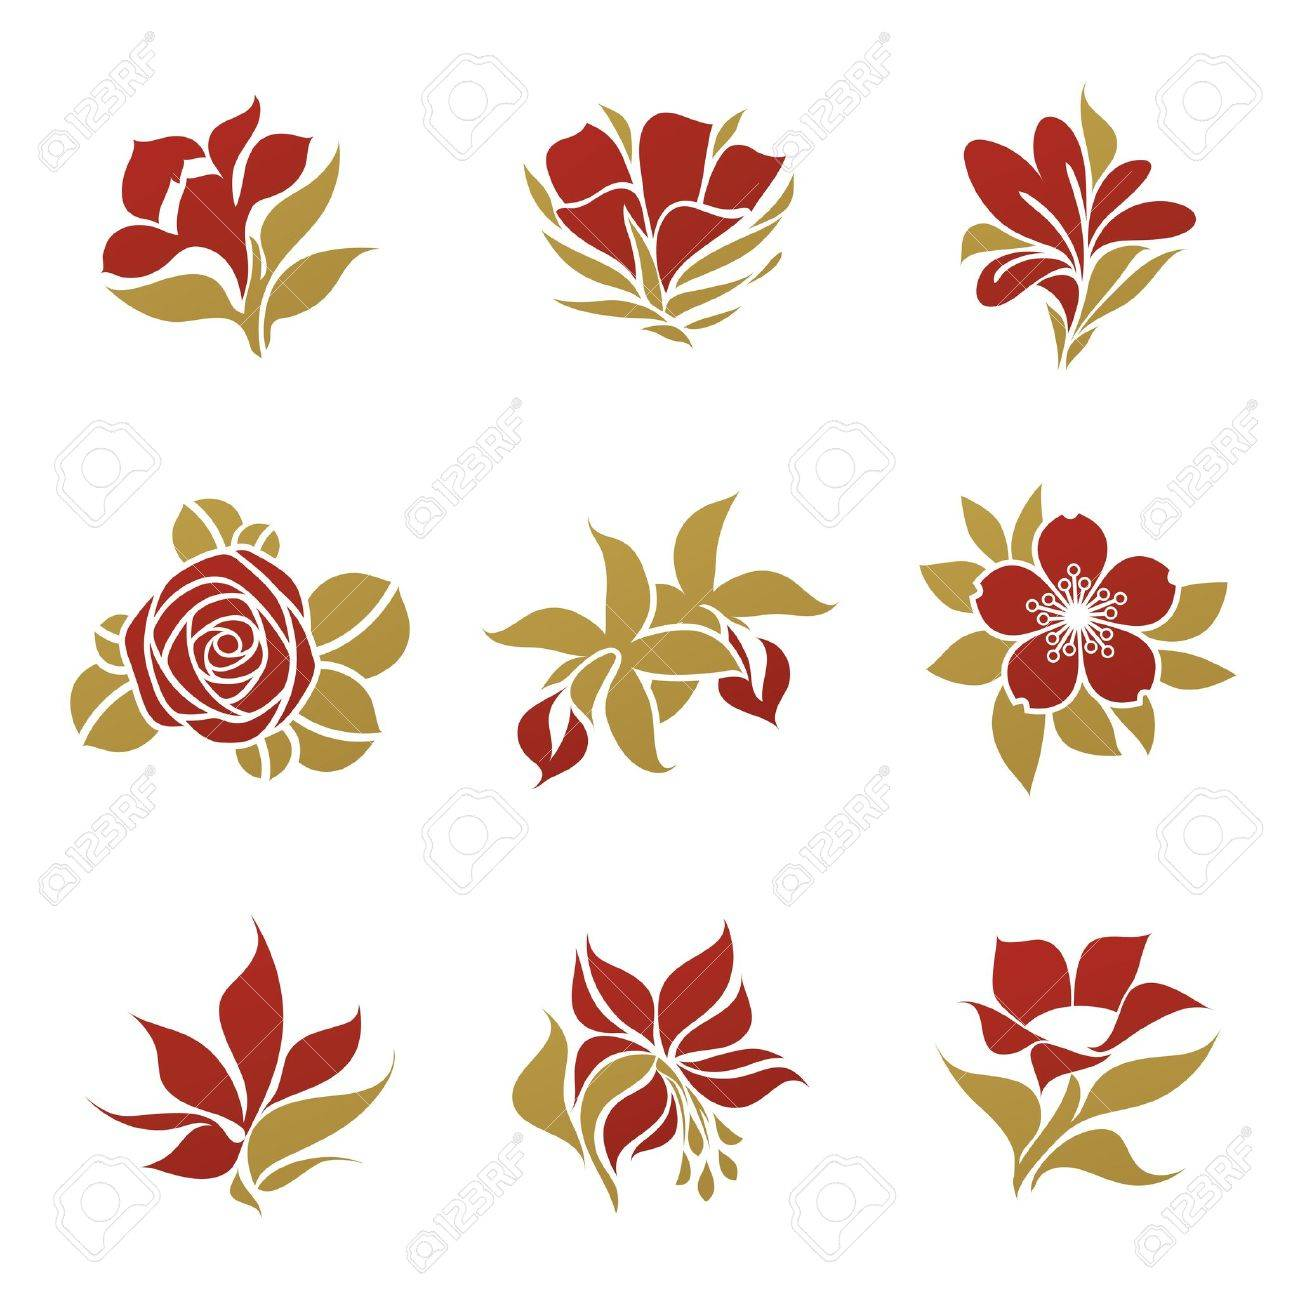 Flowers Vector Logo Template Set Elements For Design Royalty Free